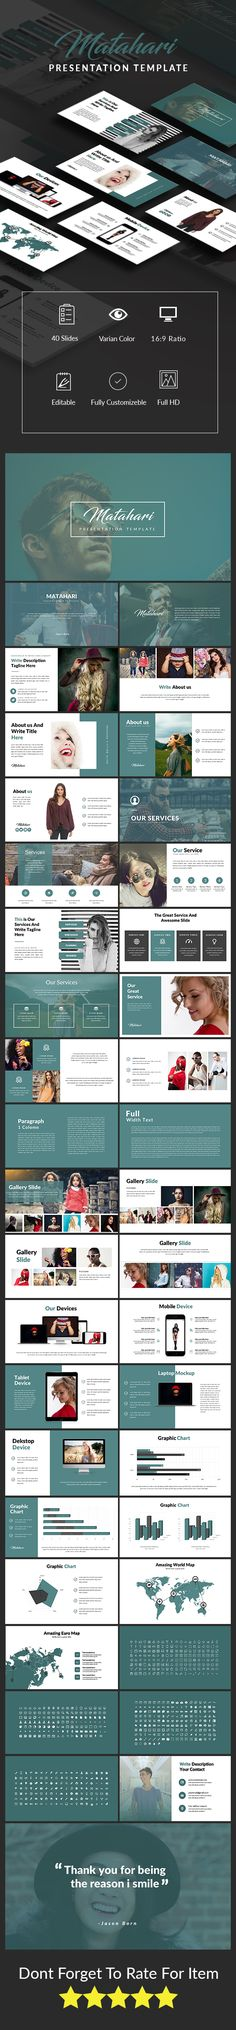 Income PowerPoint Presentation templates, Template and Business - income template